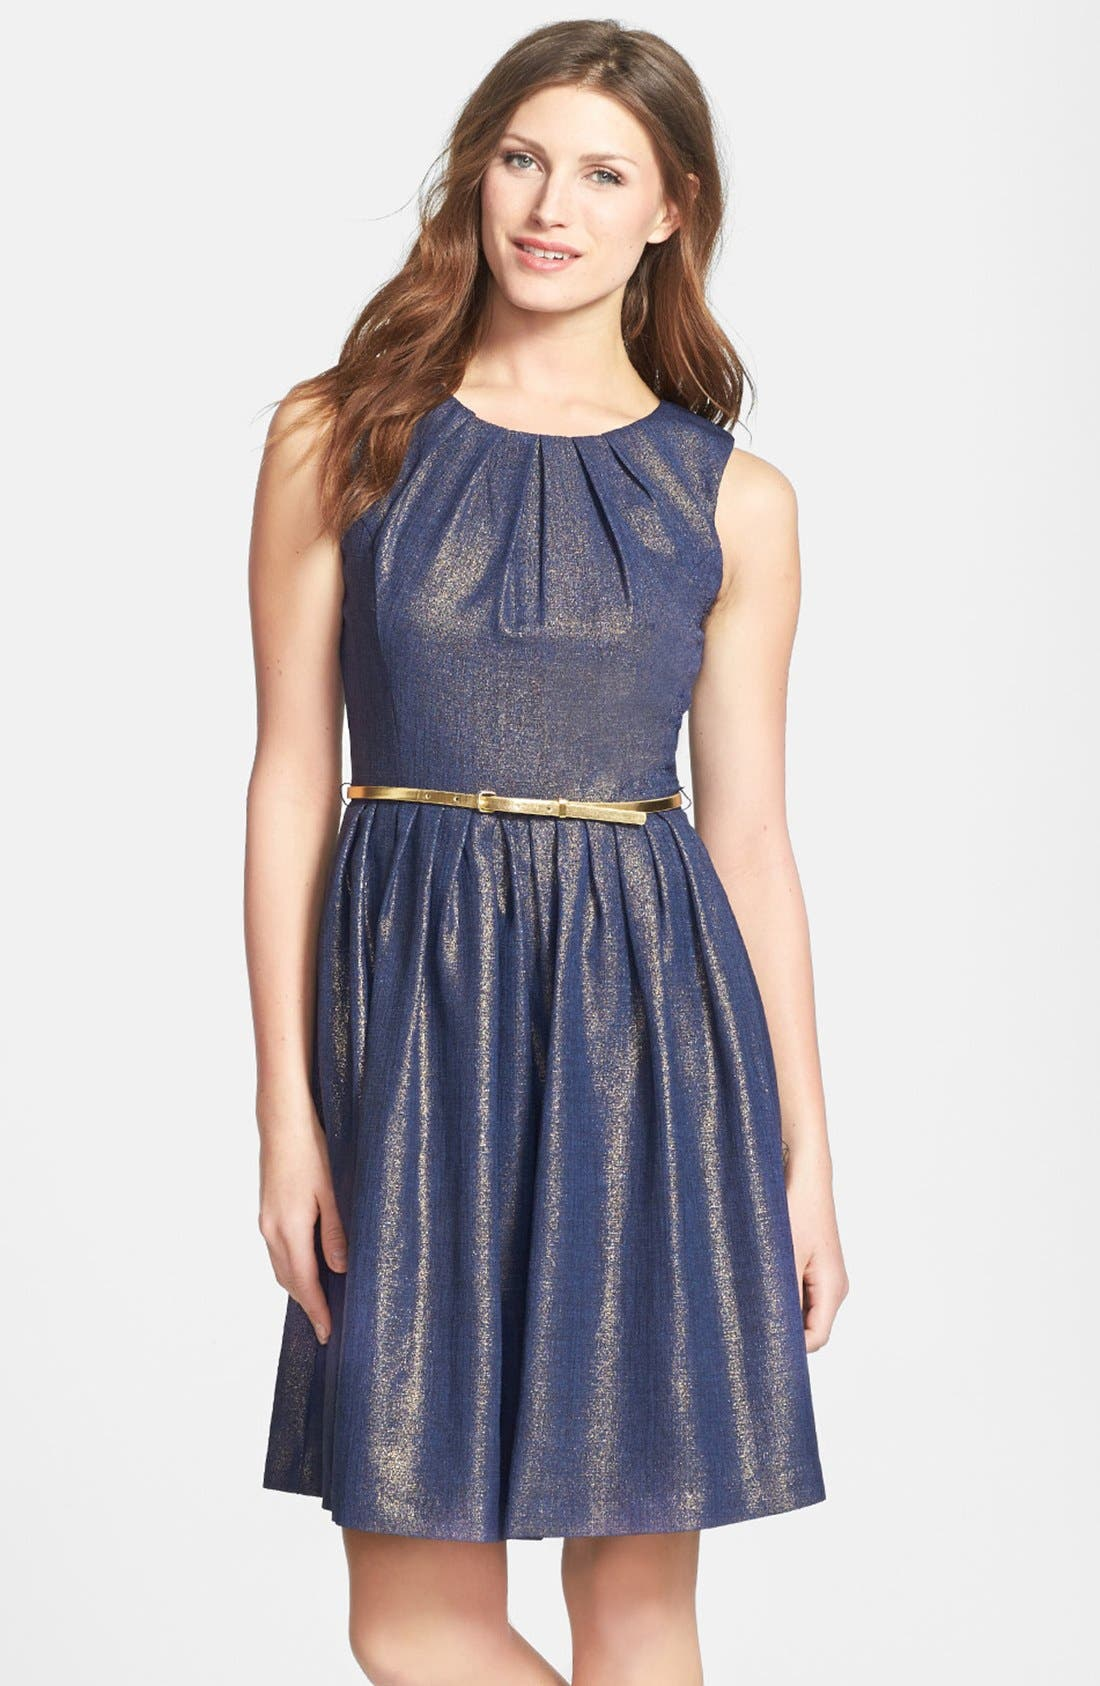 Alternate Image 1 Selected - Ellen Tracy Metallic Sleeveless Dress (Regular & Petite)